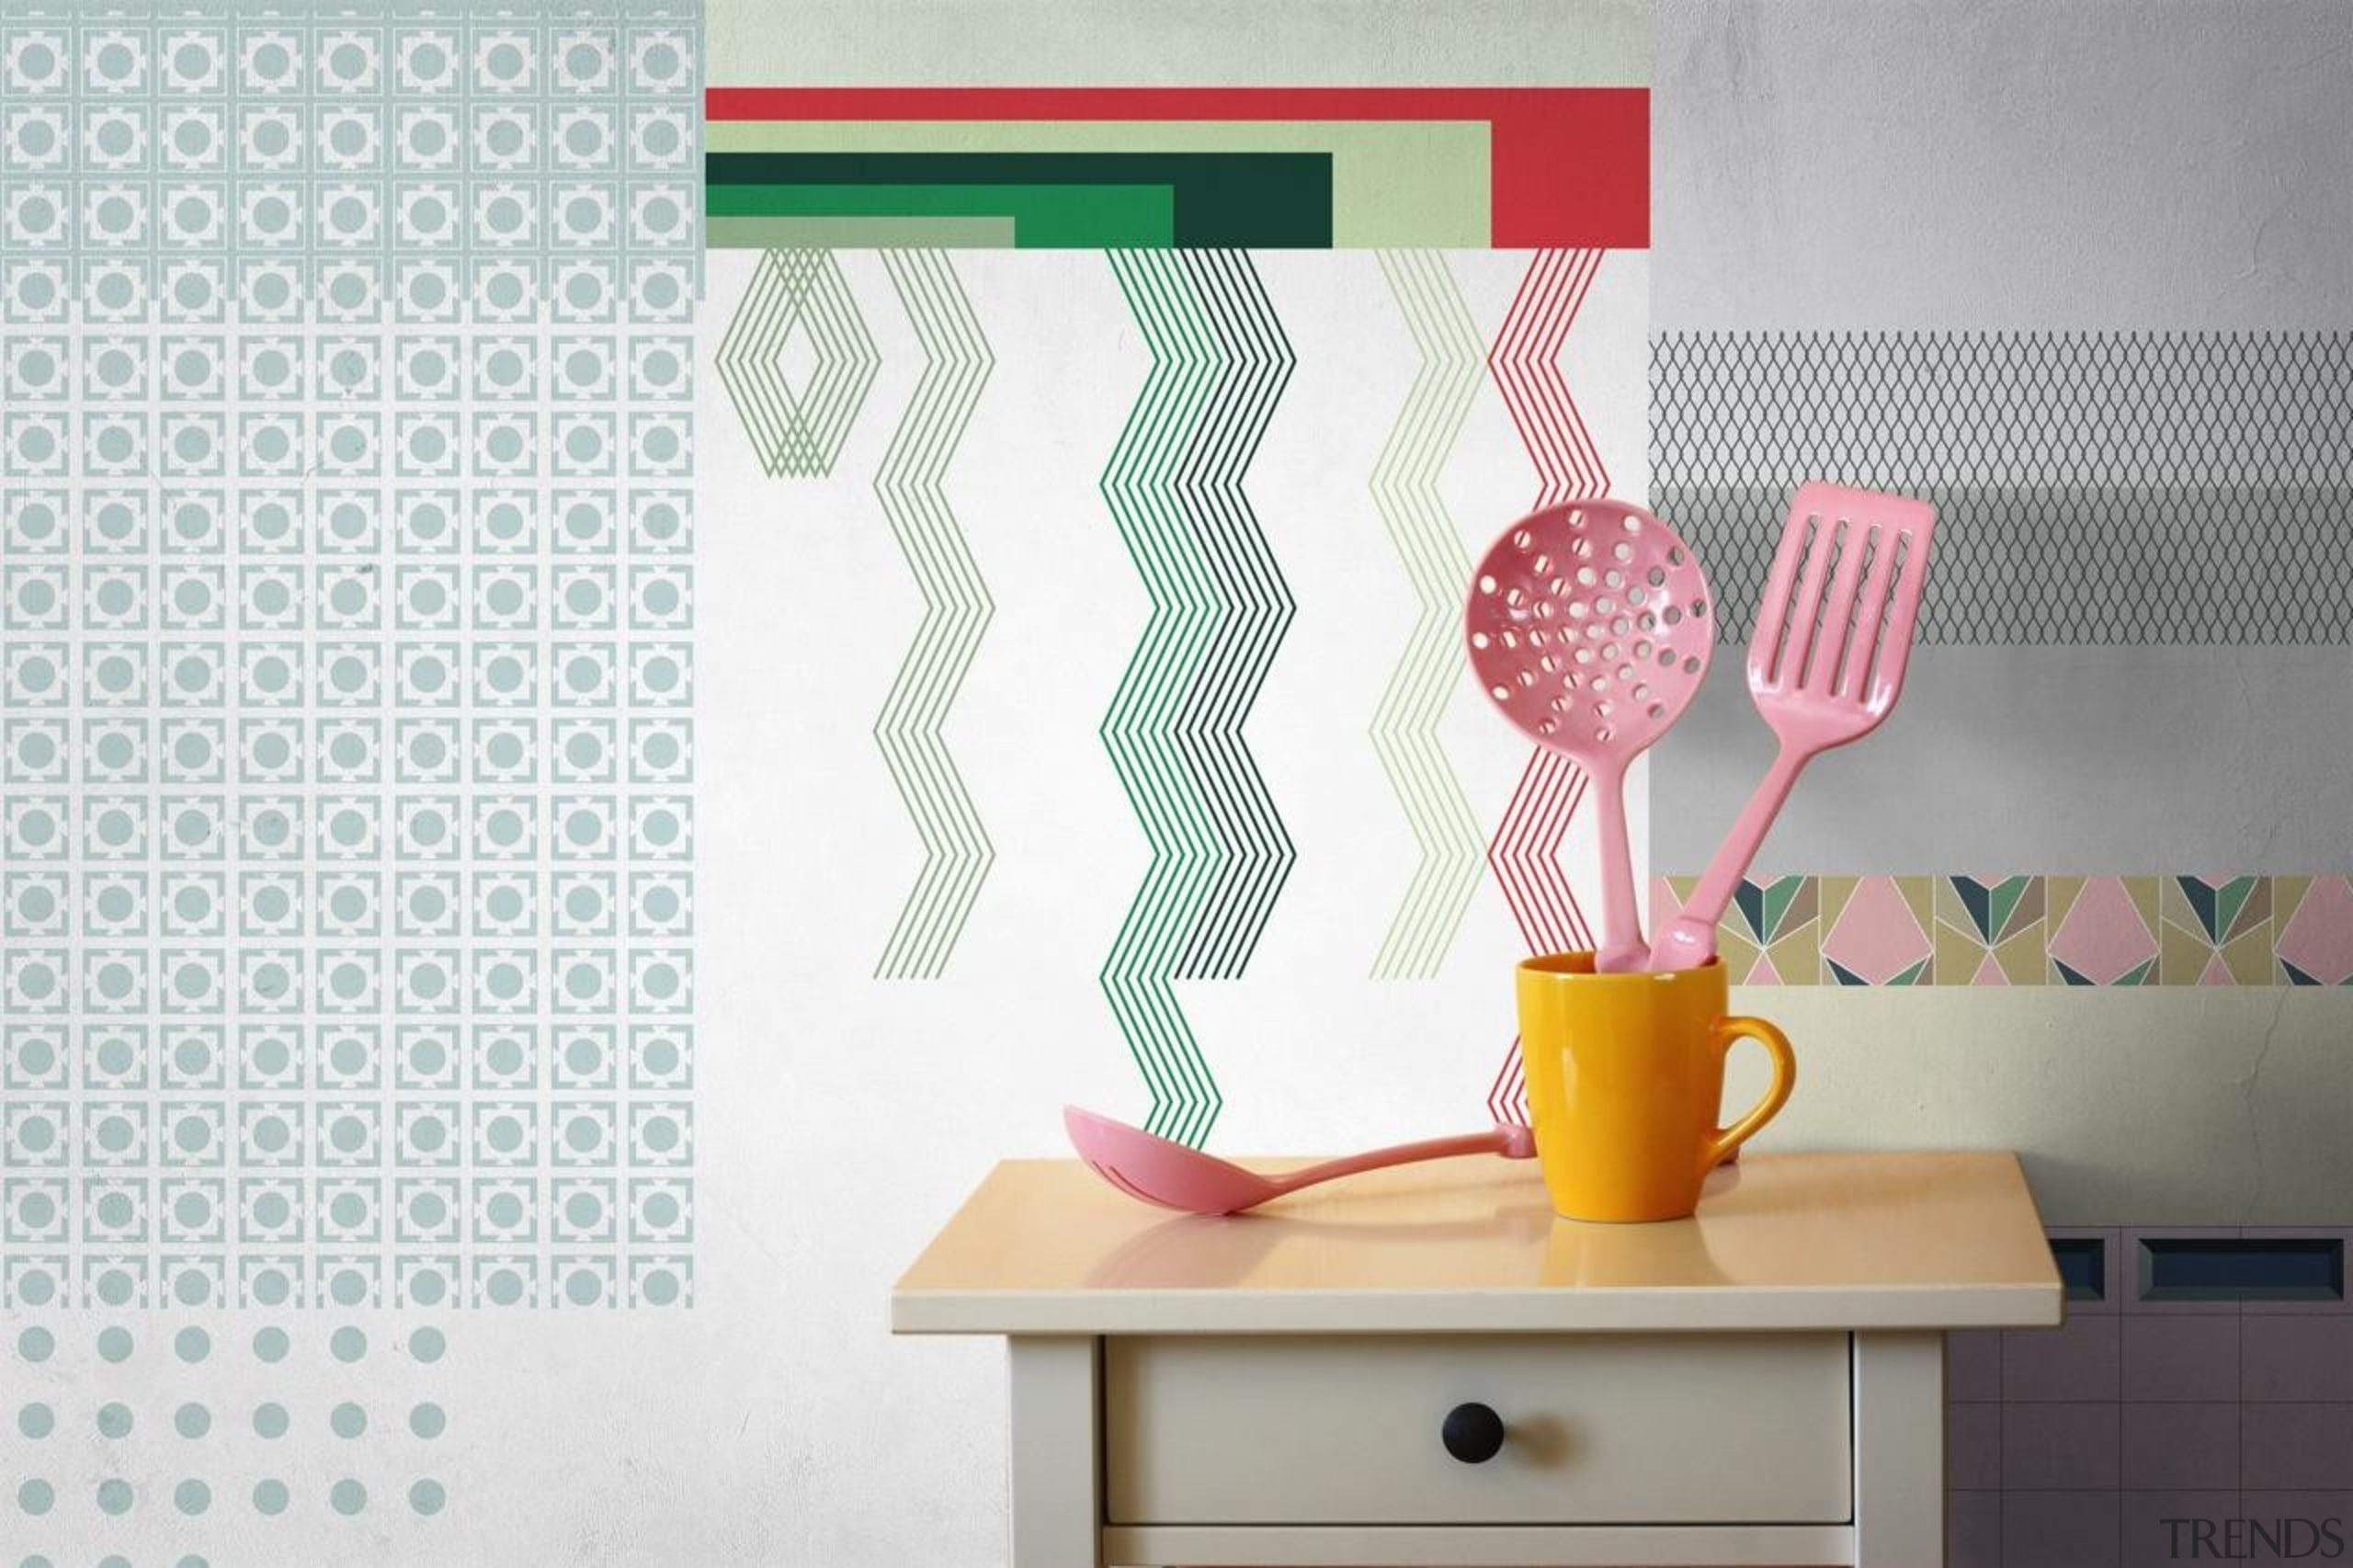 One of the challenges when putting up wallpaper interior design, pink, product design, wall, yellow, white